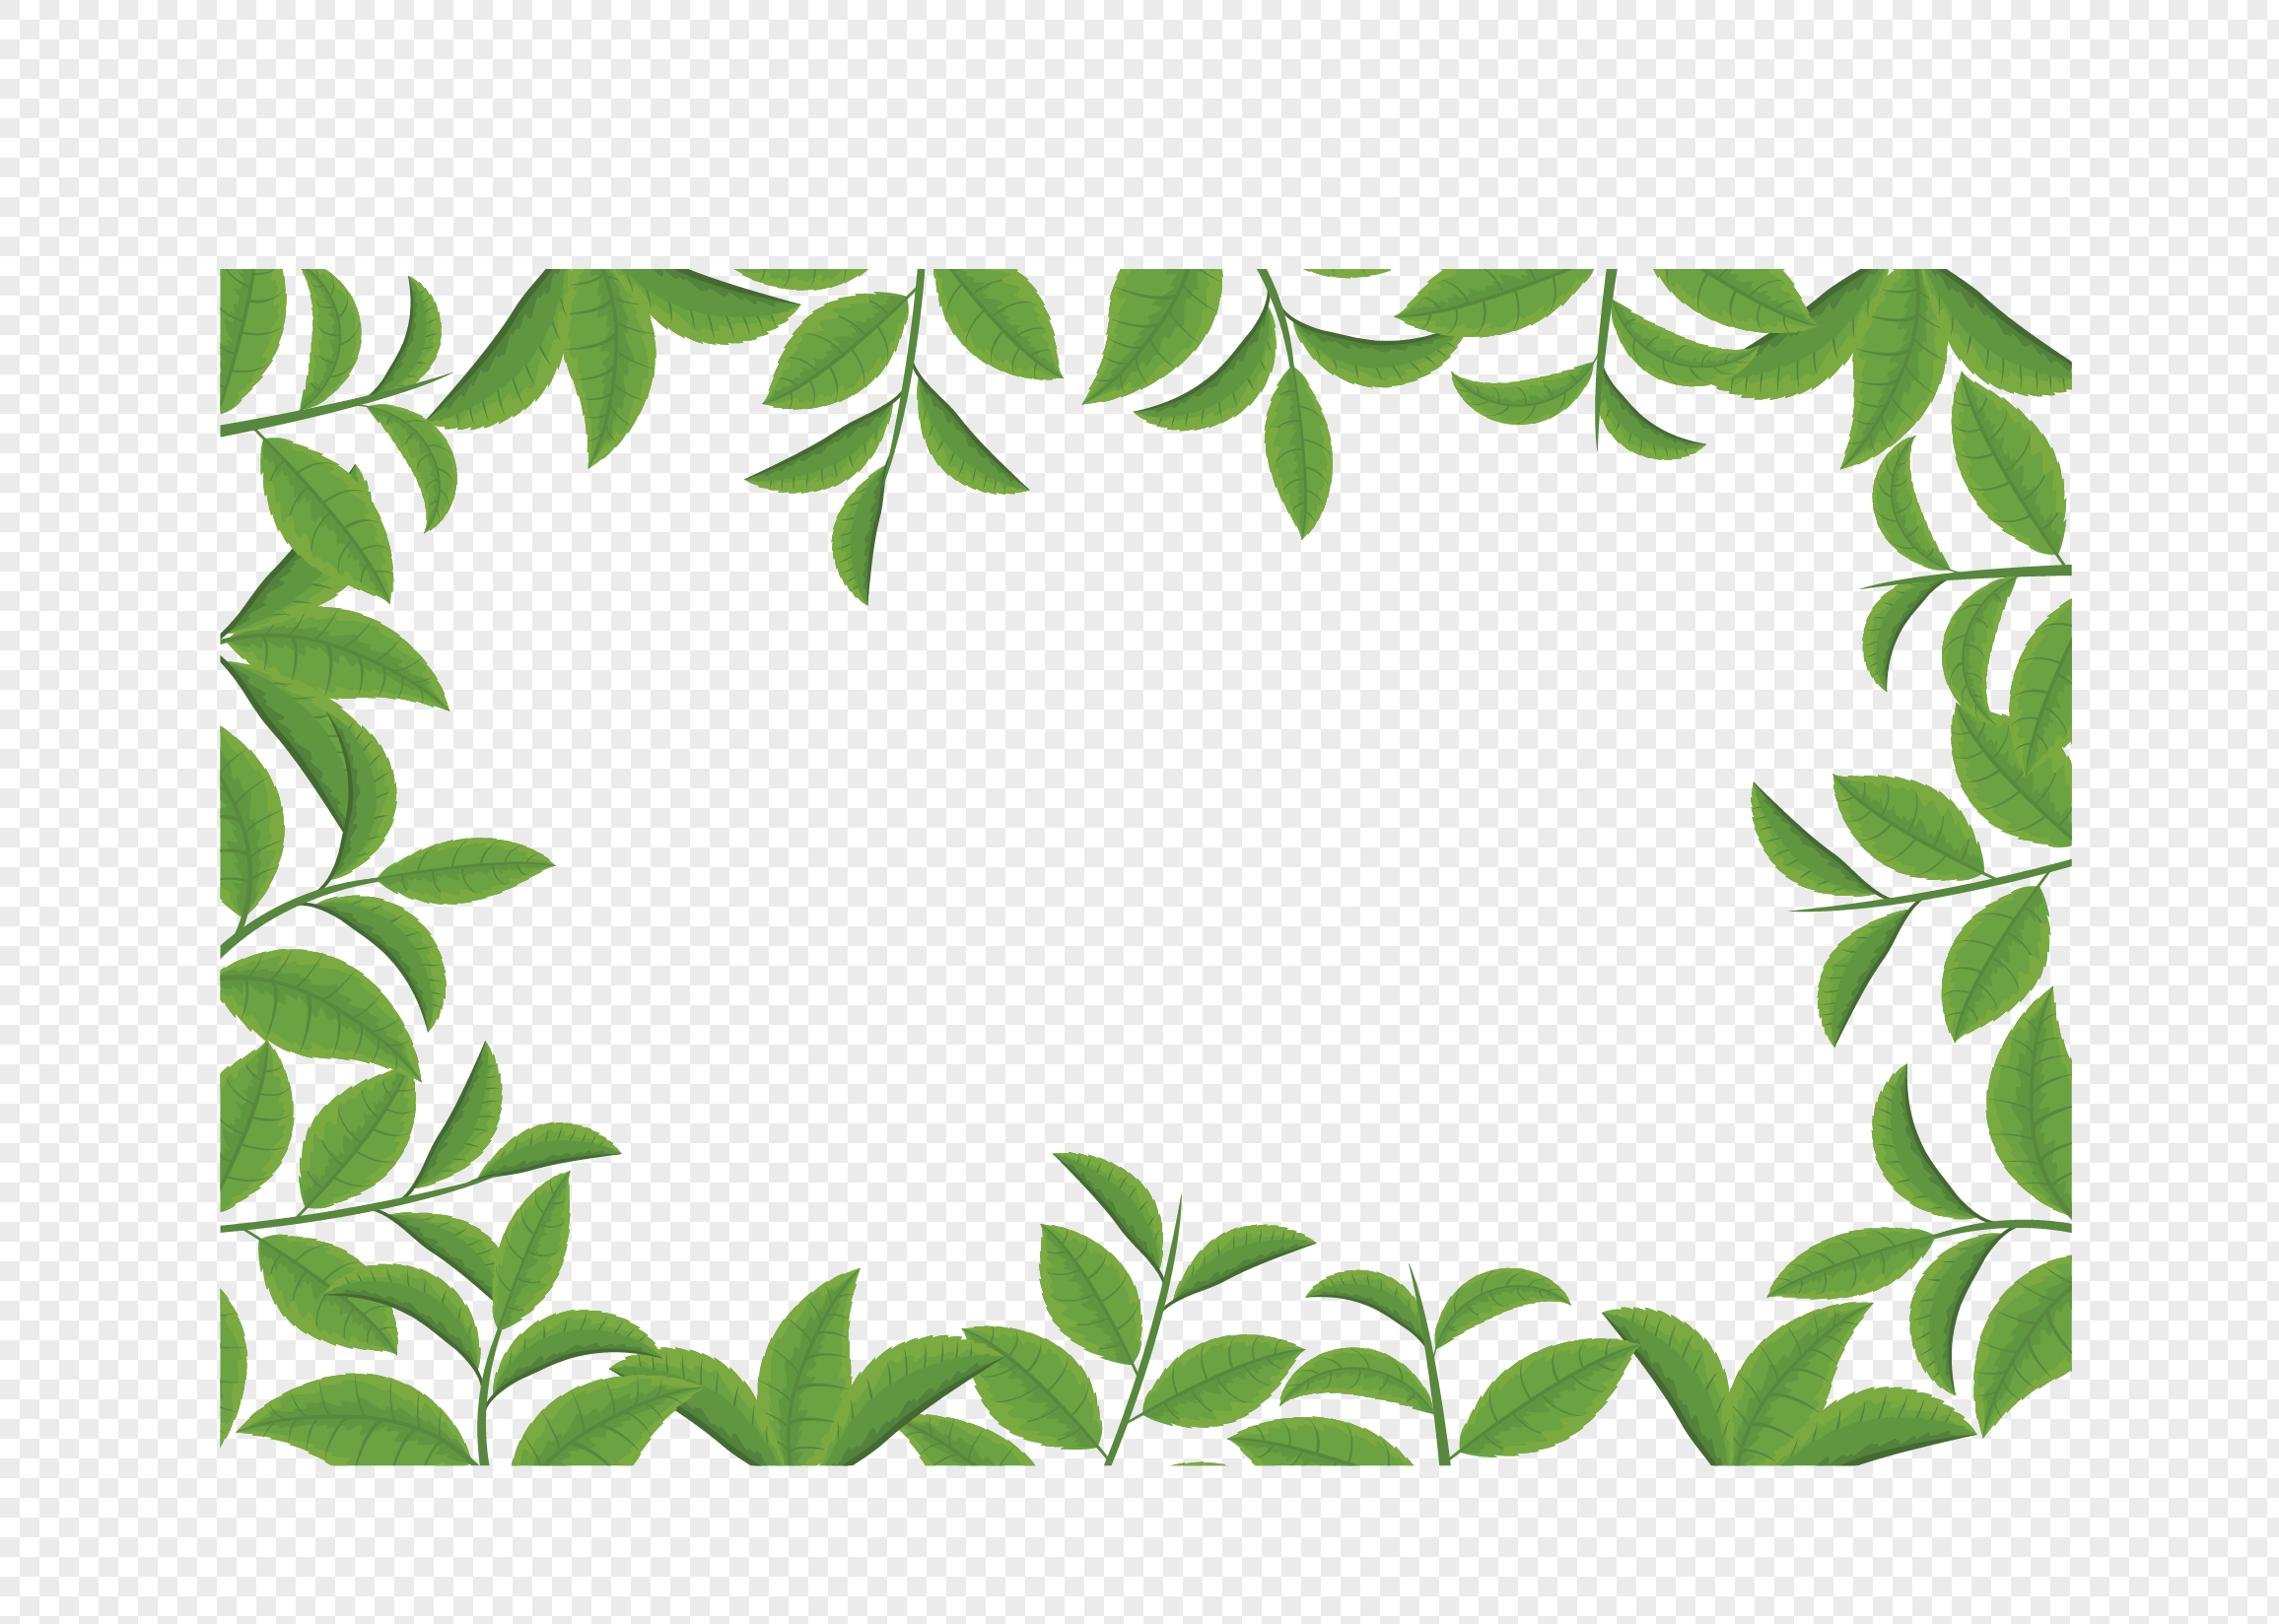 Green leaves png images free download pictures leaf free.